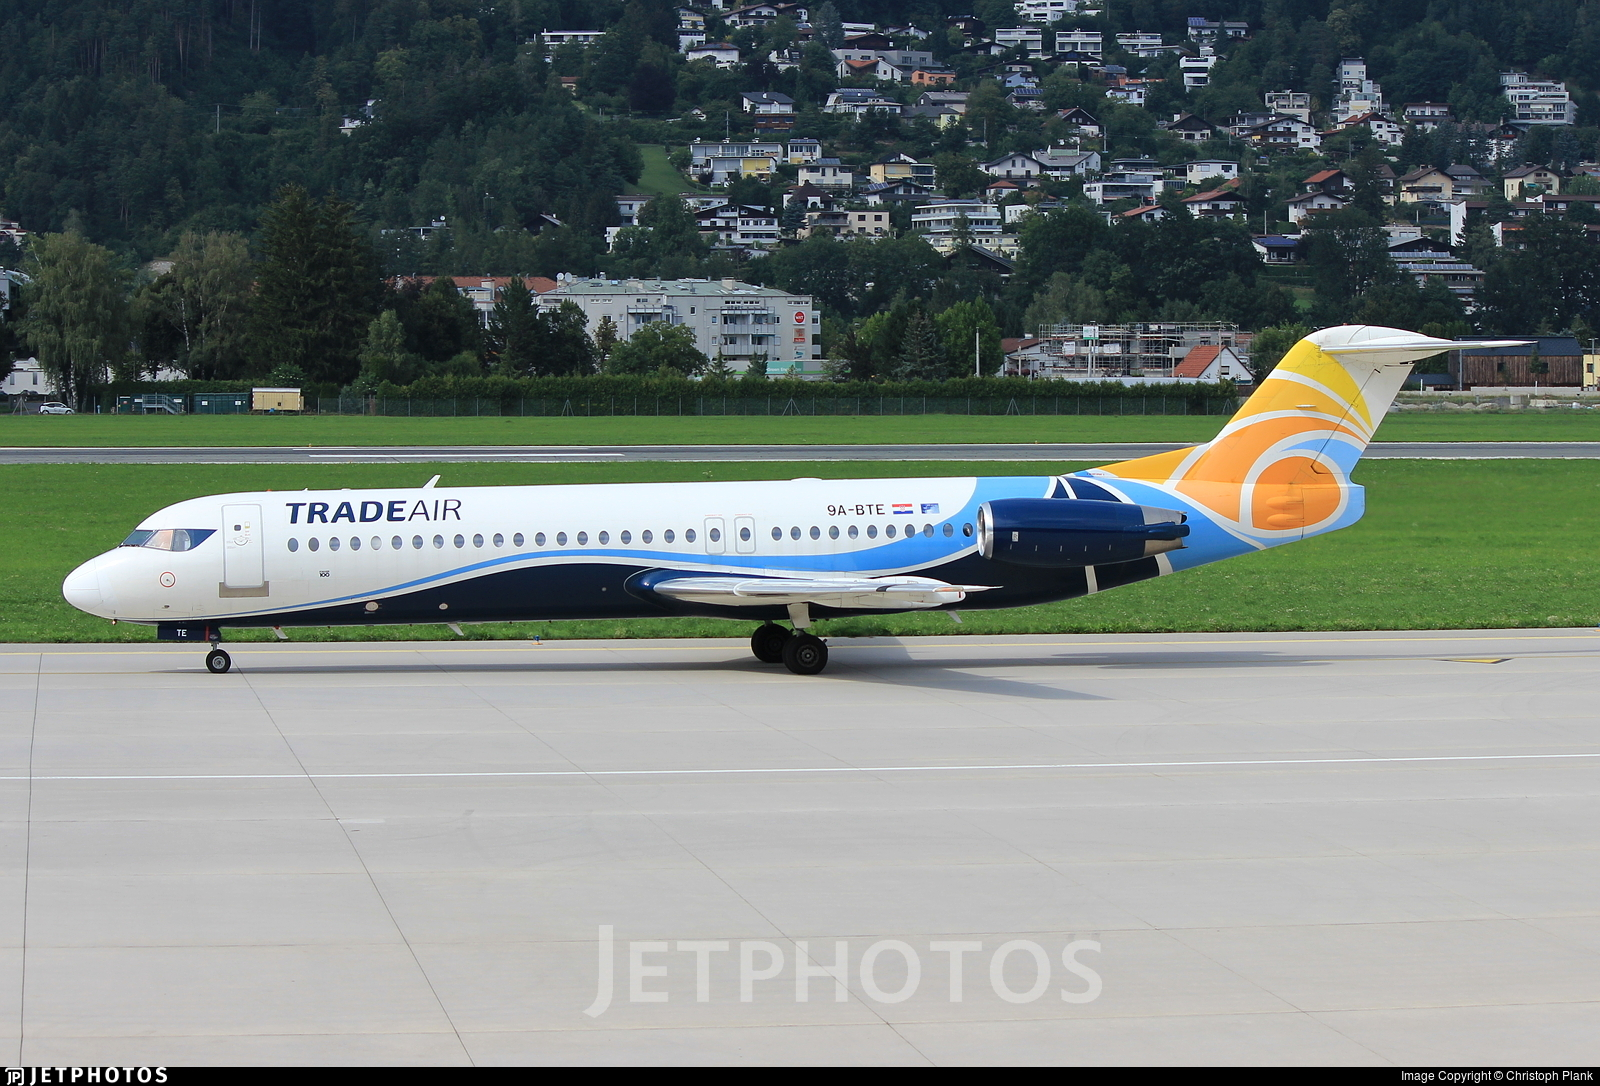 9A-BTE - Fokker 100 - Trade Air